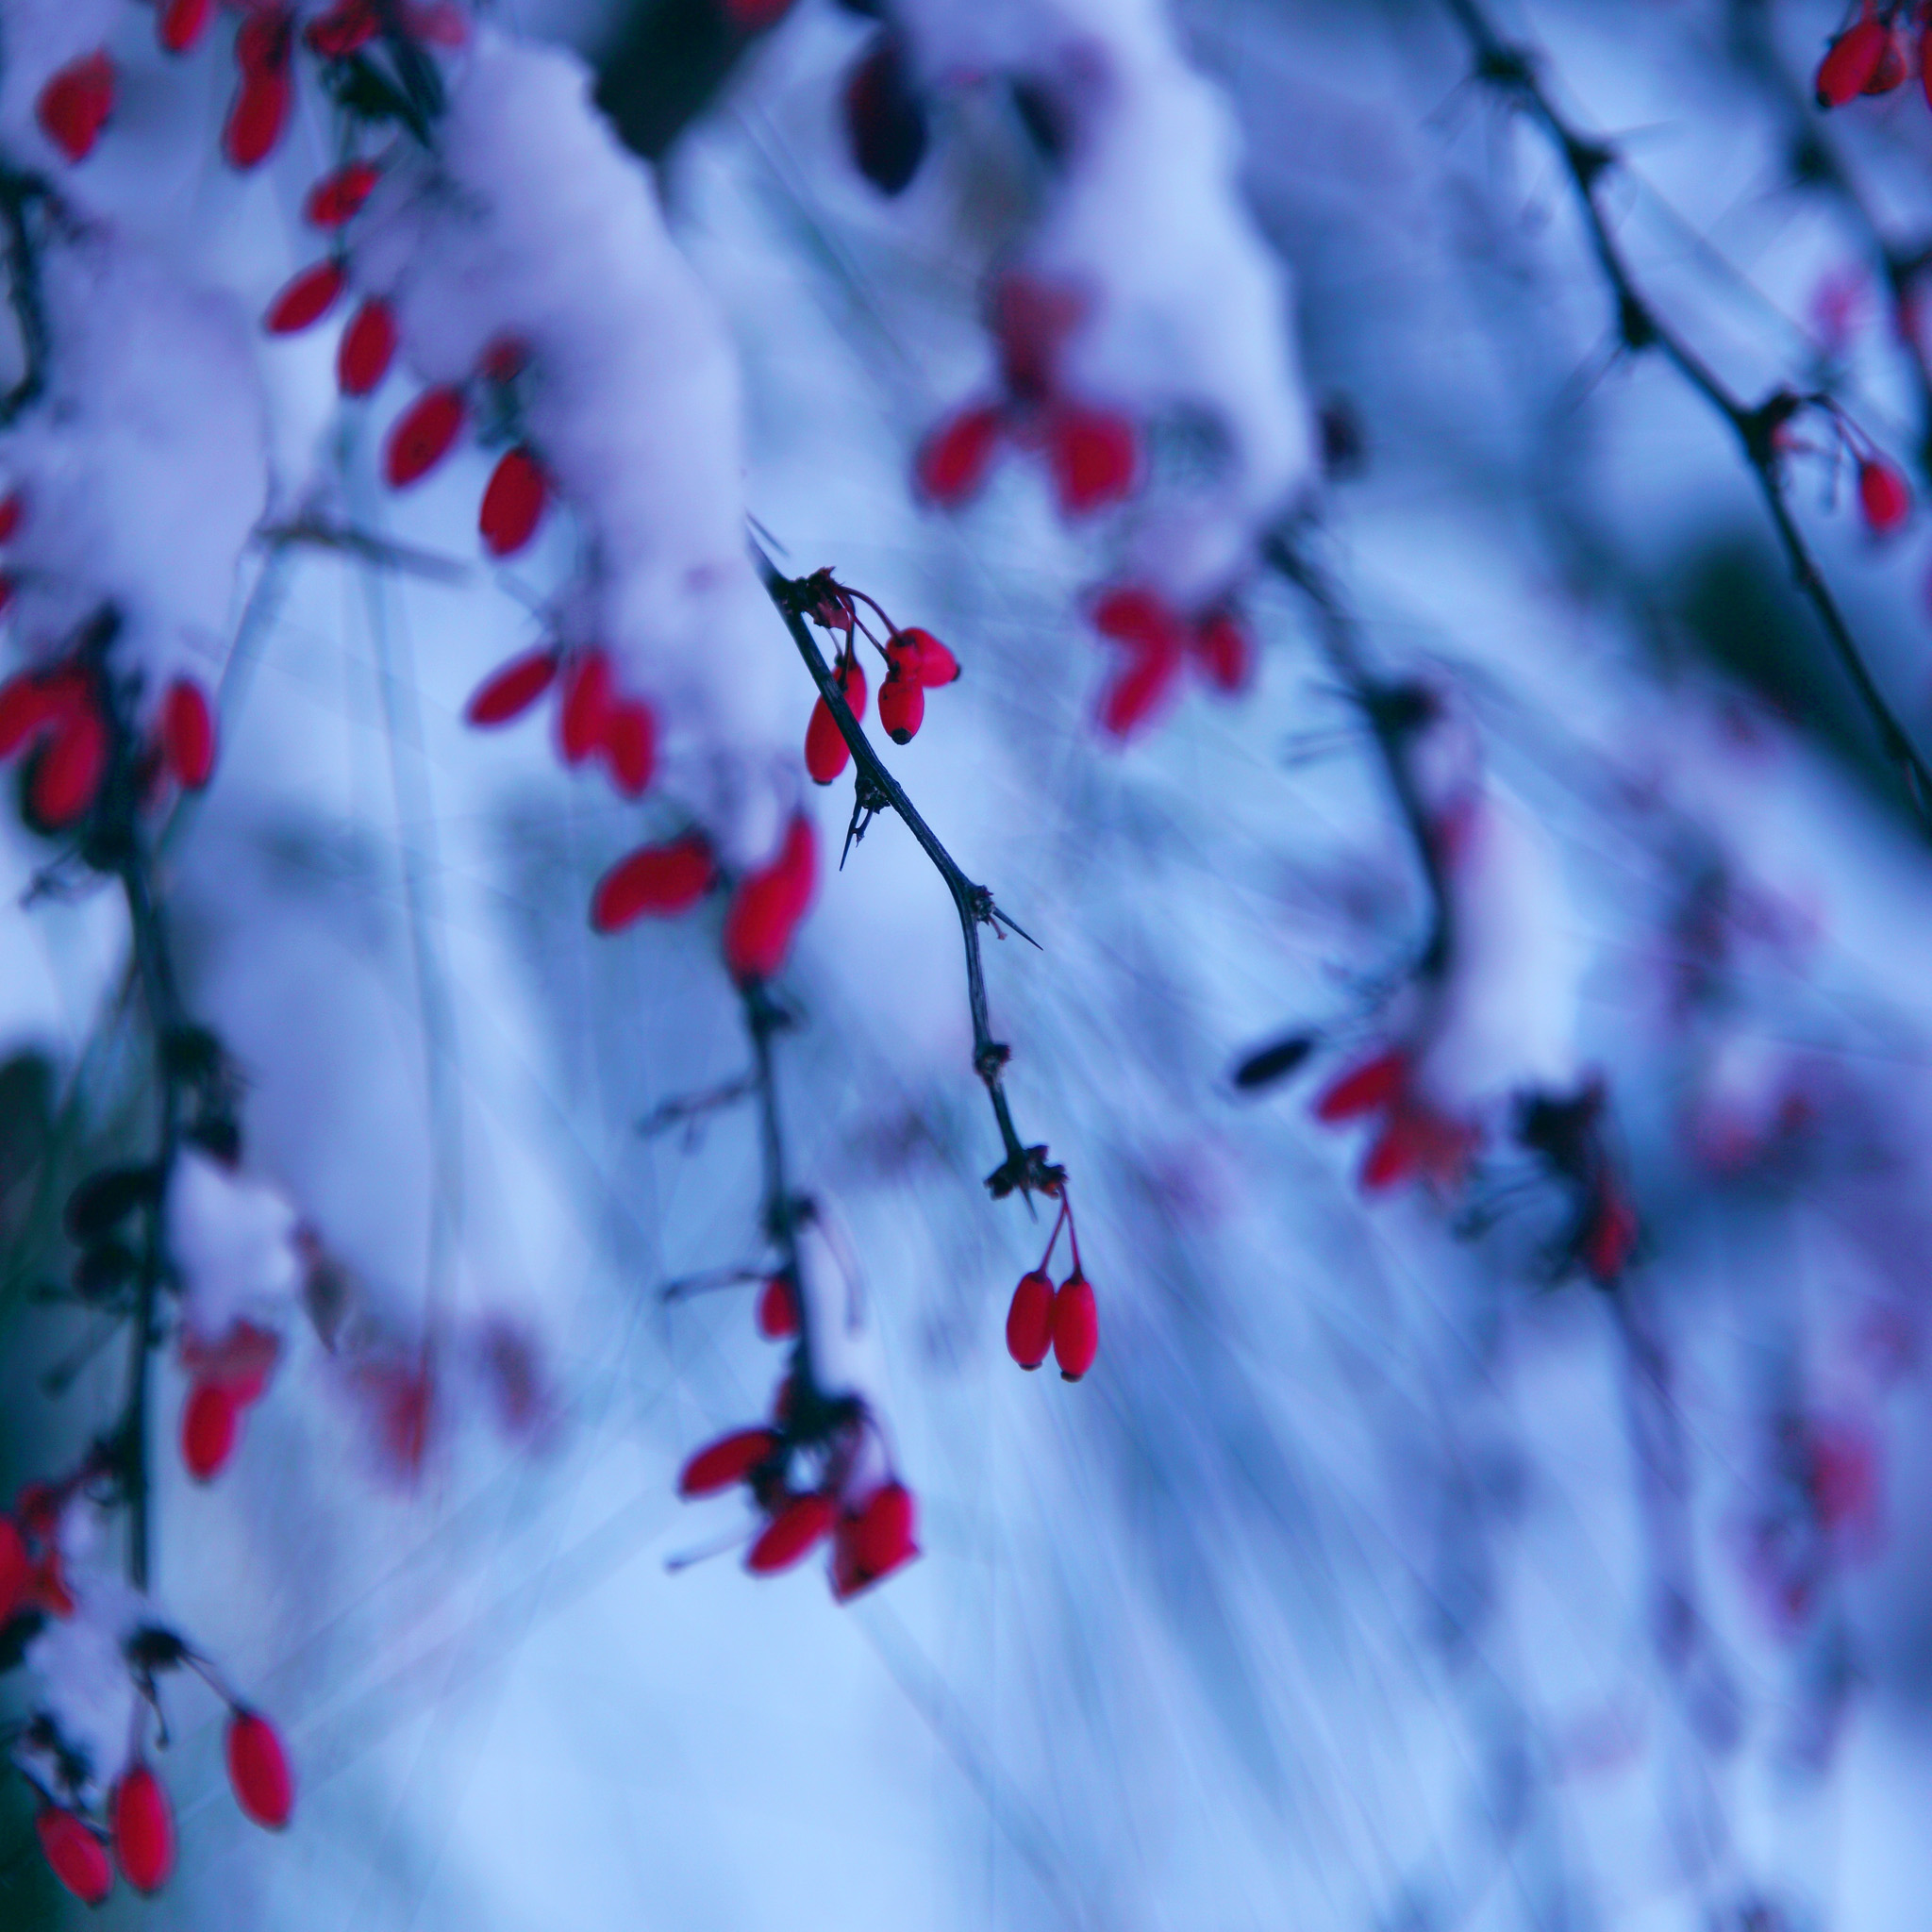 d sharon pruitted - red winter berries ipad wallpaper